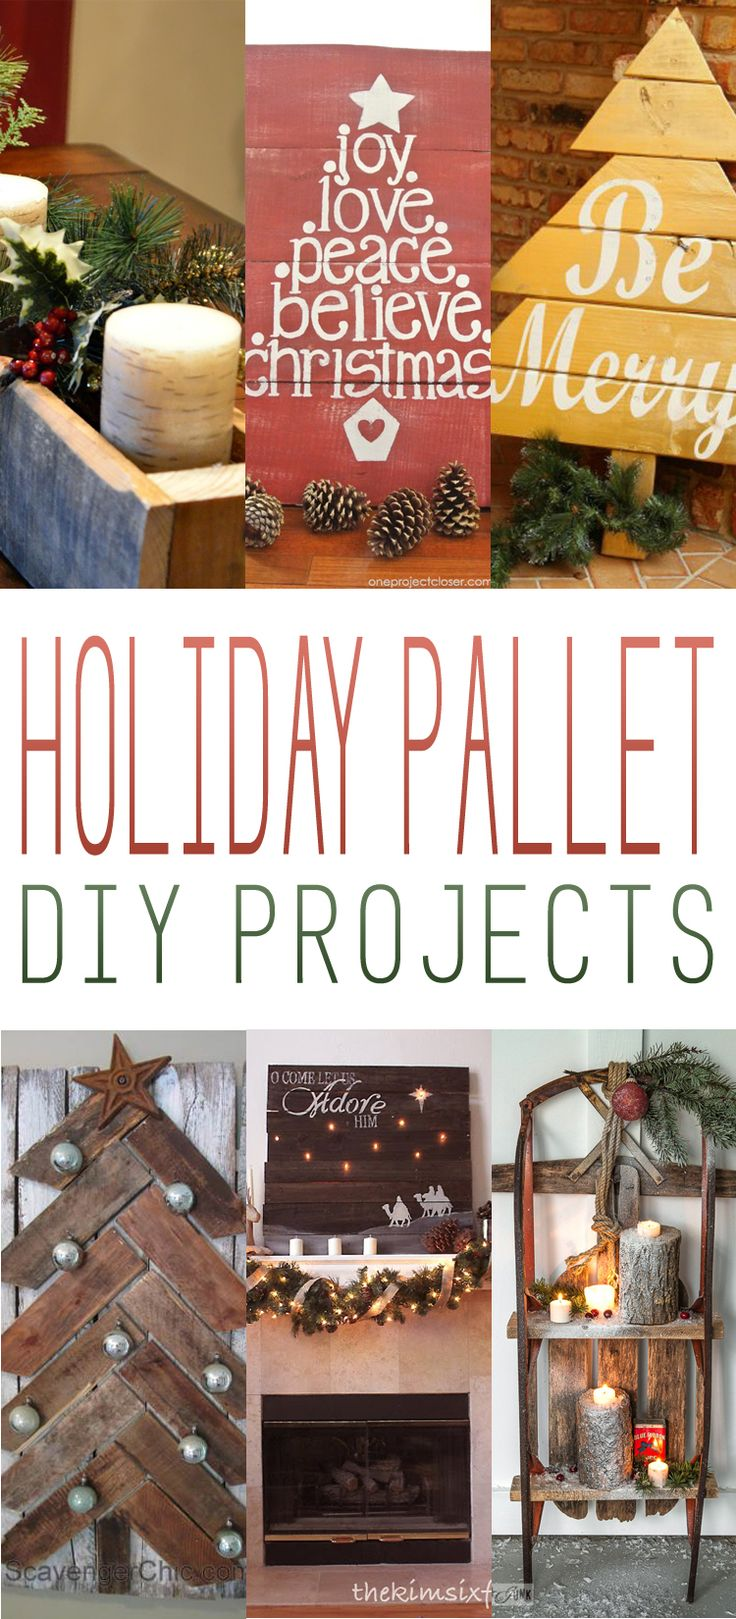 Holiday Pallet DIY Projects!